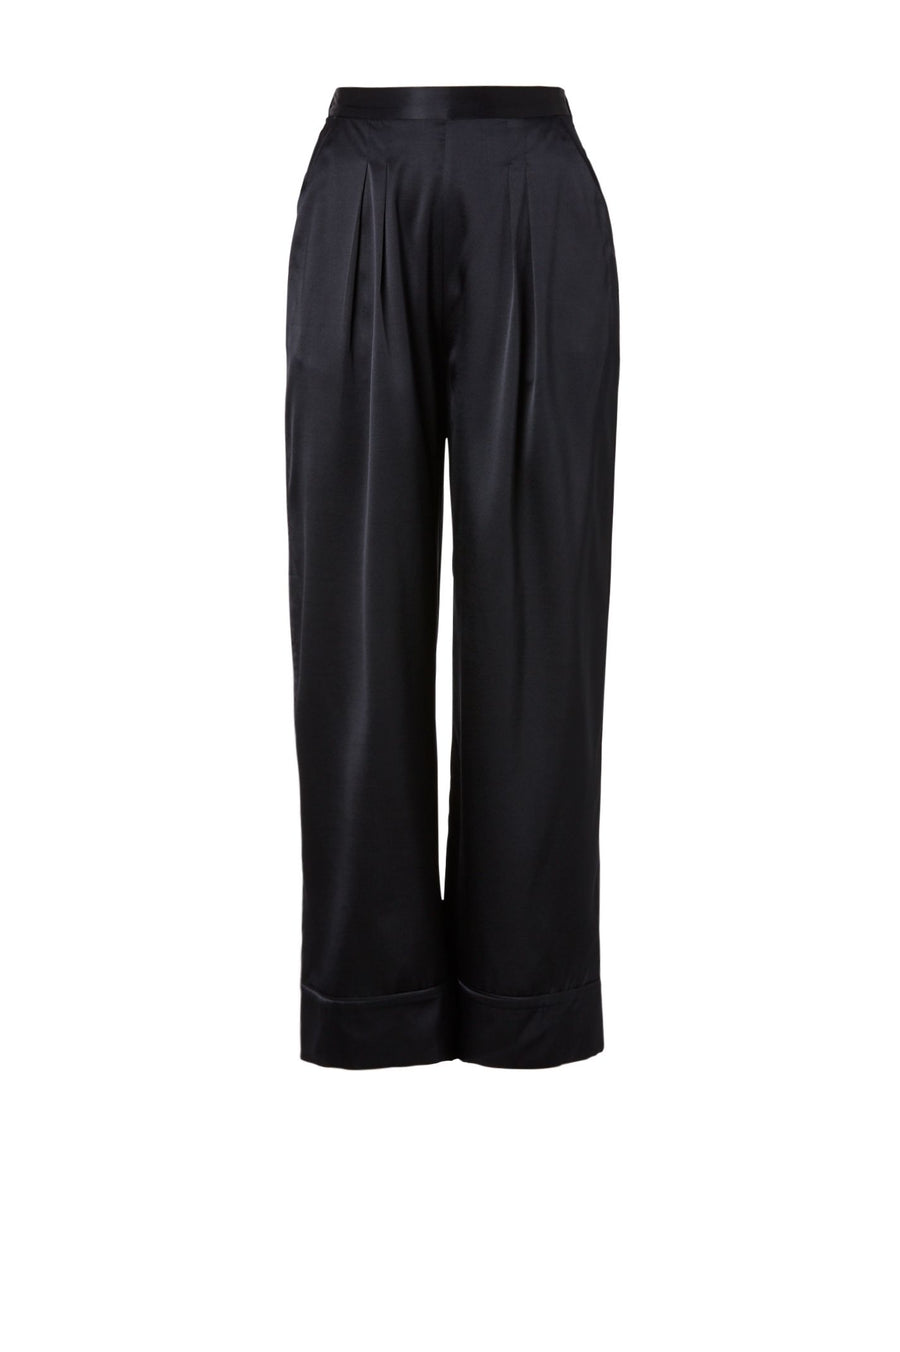 SATIN PIPED TROUSER NAVY, Flat Front Pull-on Trouser, Wide hems